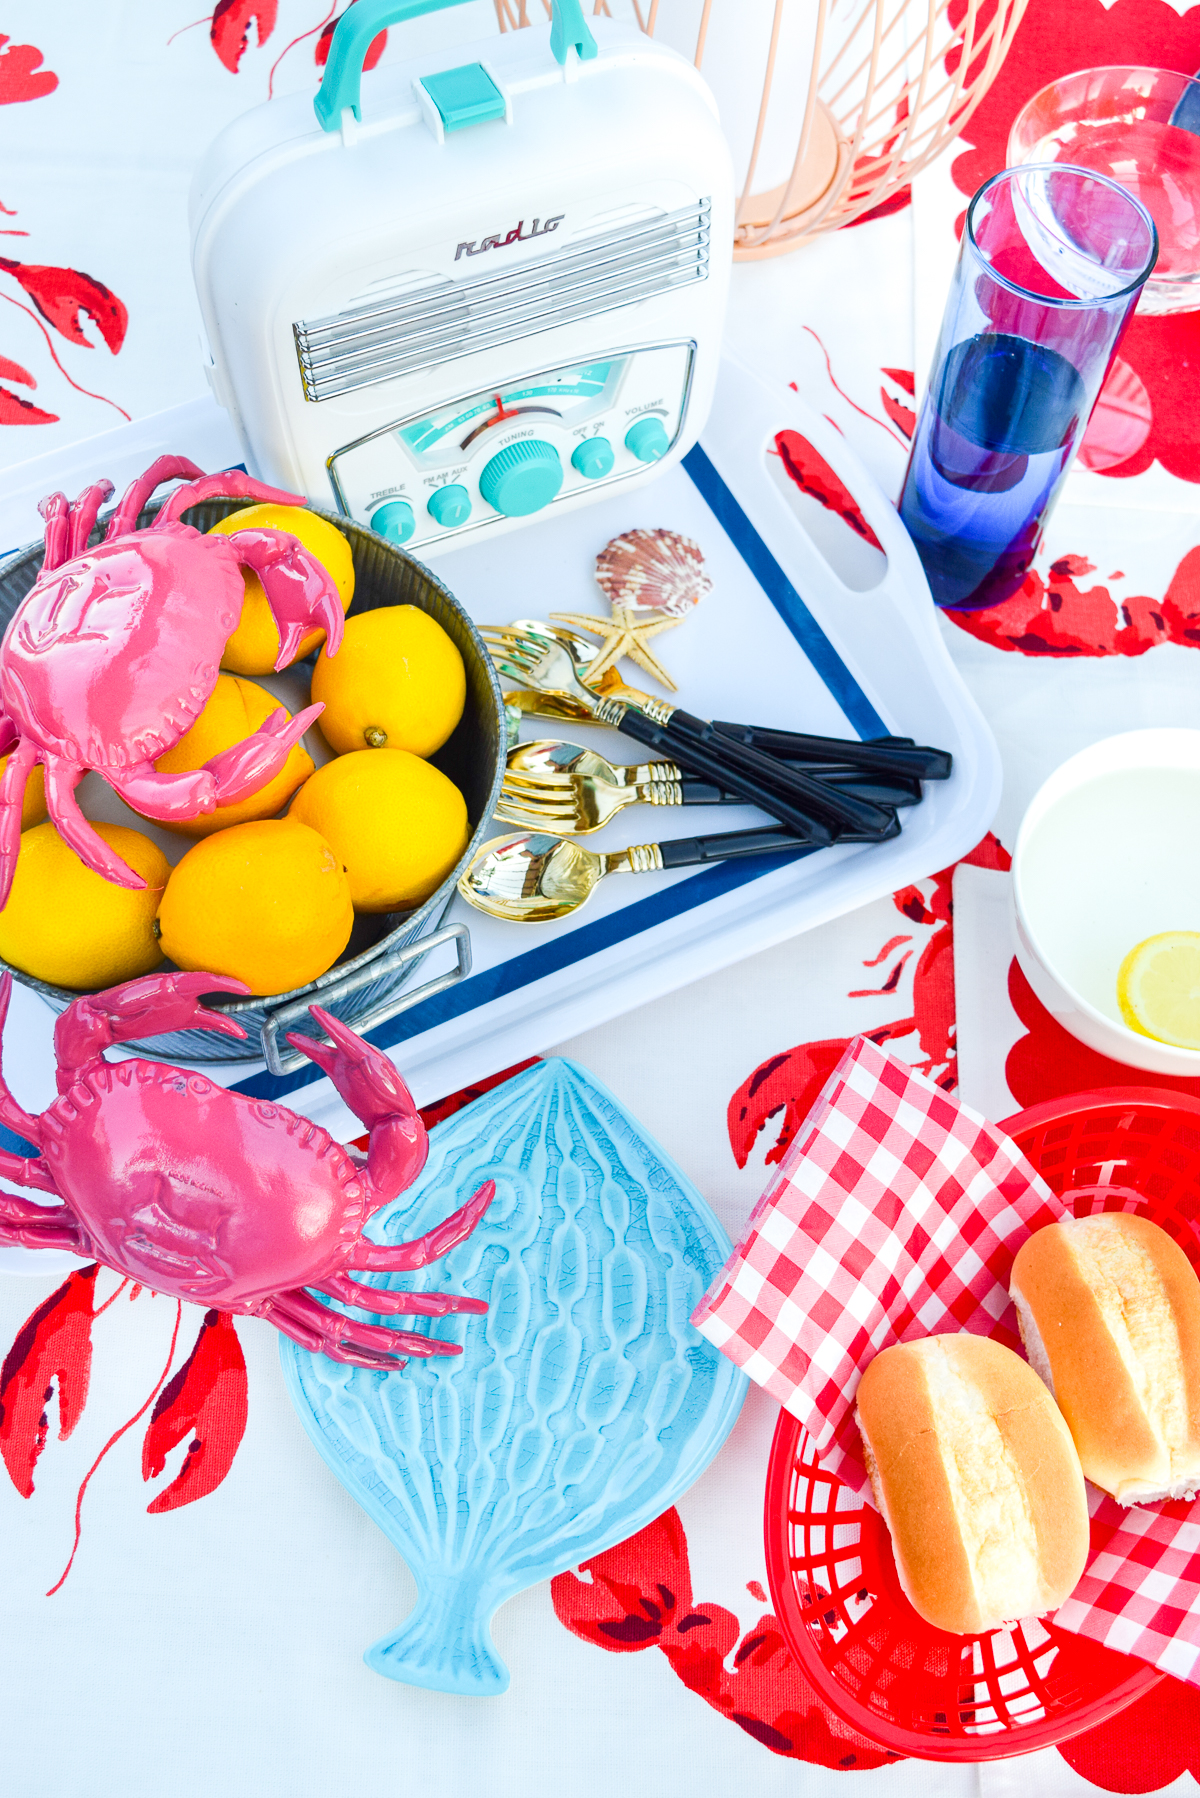 tabletop accessories for seafood table decor